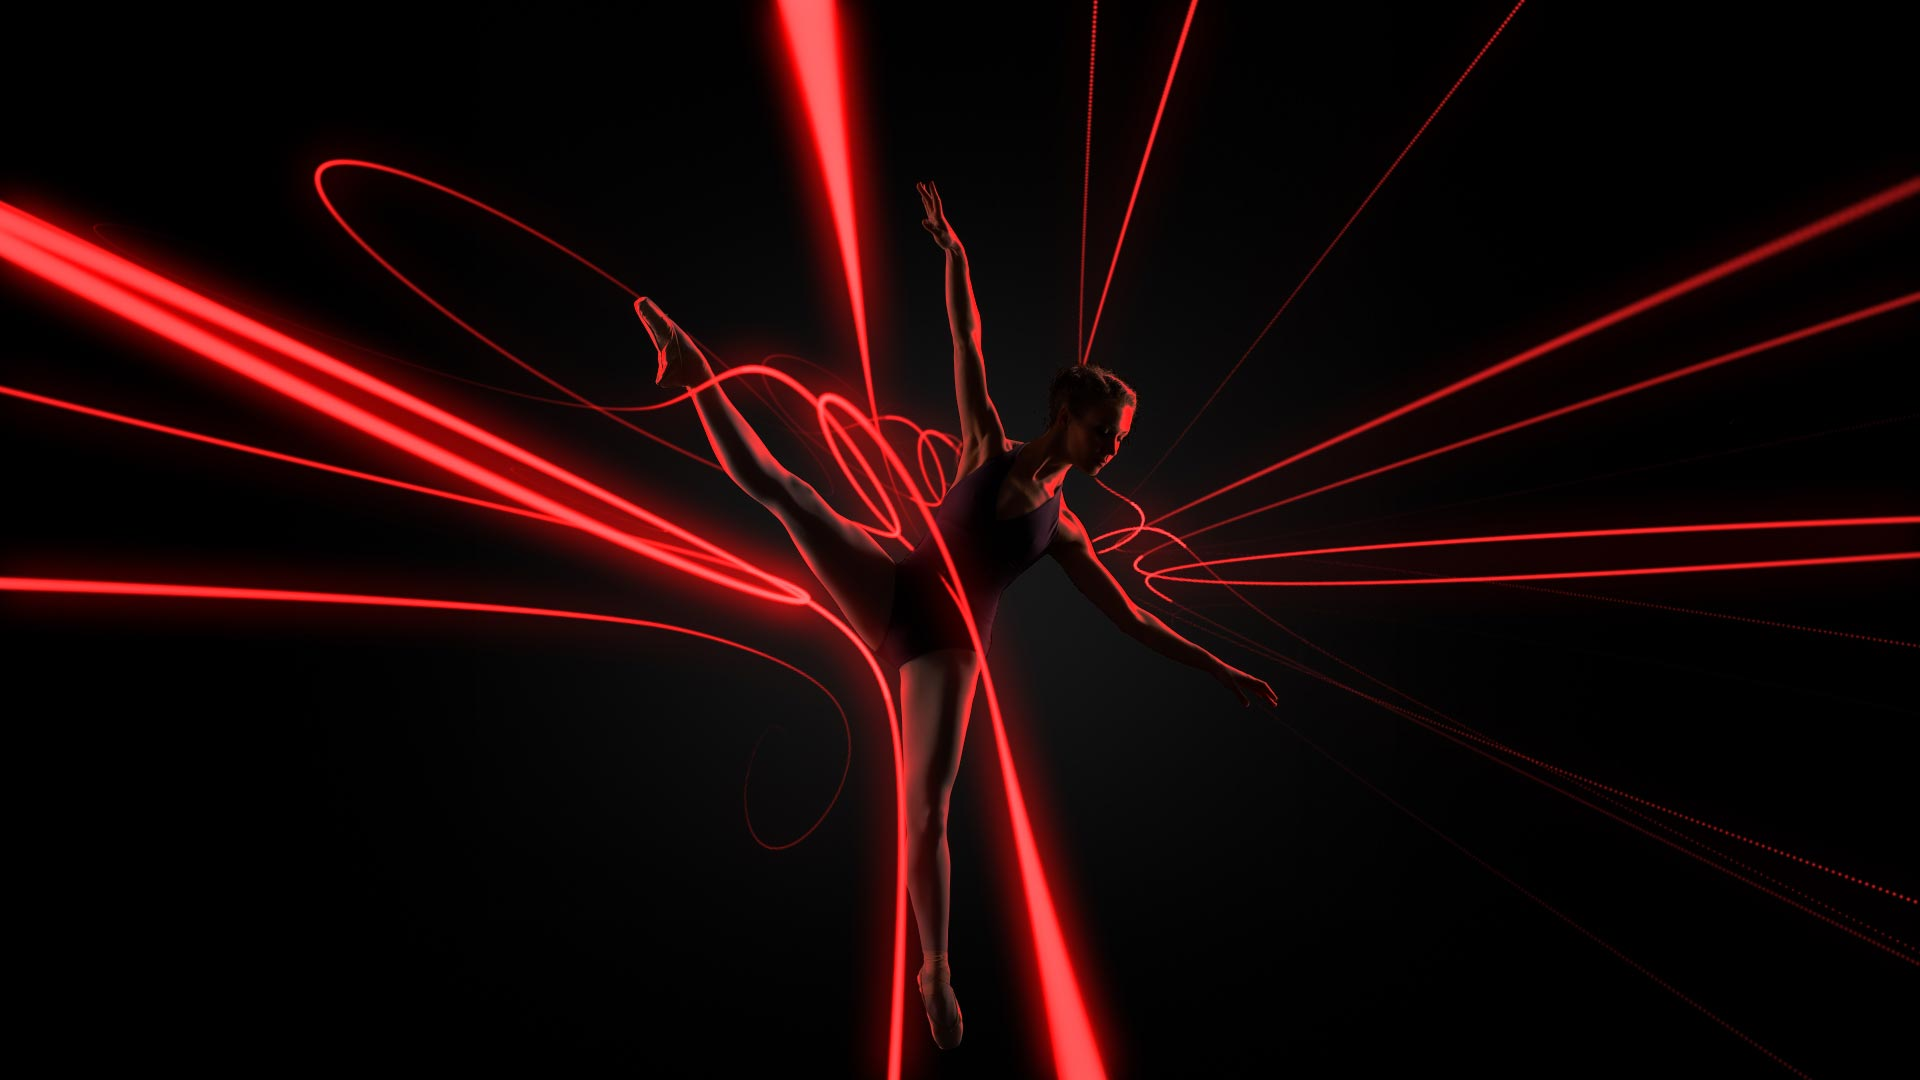 Trapcode 3D Stroke is an After Effects plugin from Red Giant for motion graphics